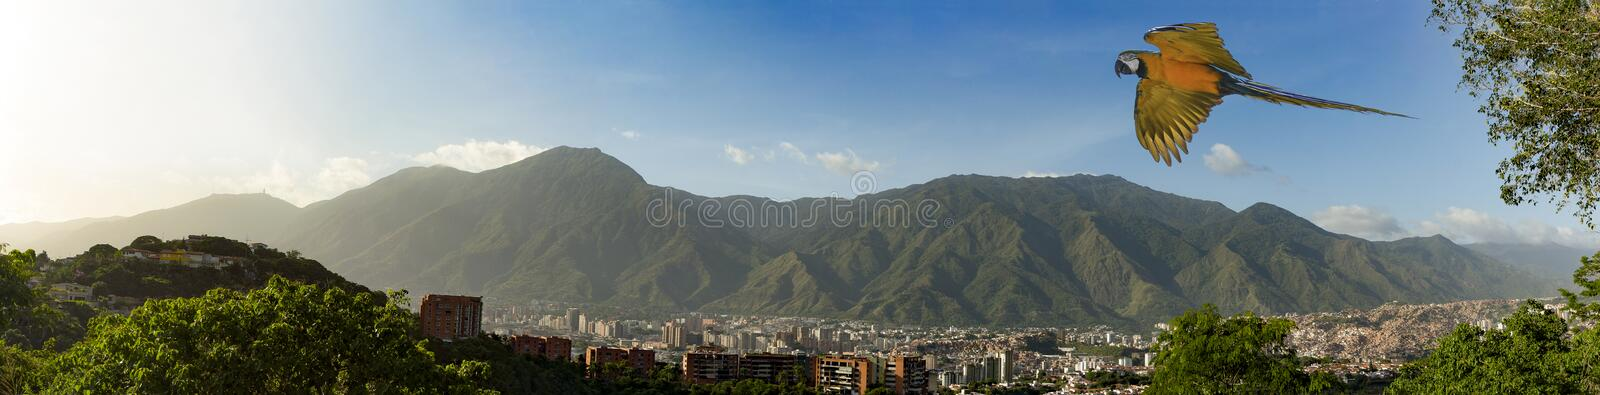 View of the city of Caracas and its iconic mountain el Avila or Waraira Repano and flying macaw.  royalty free stock photography